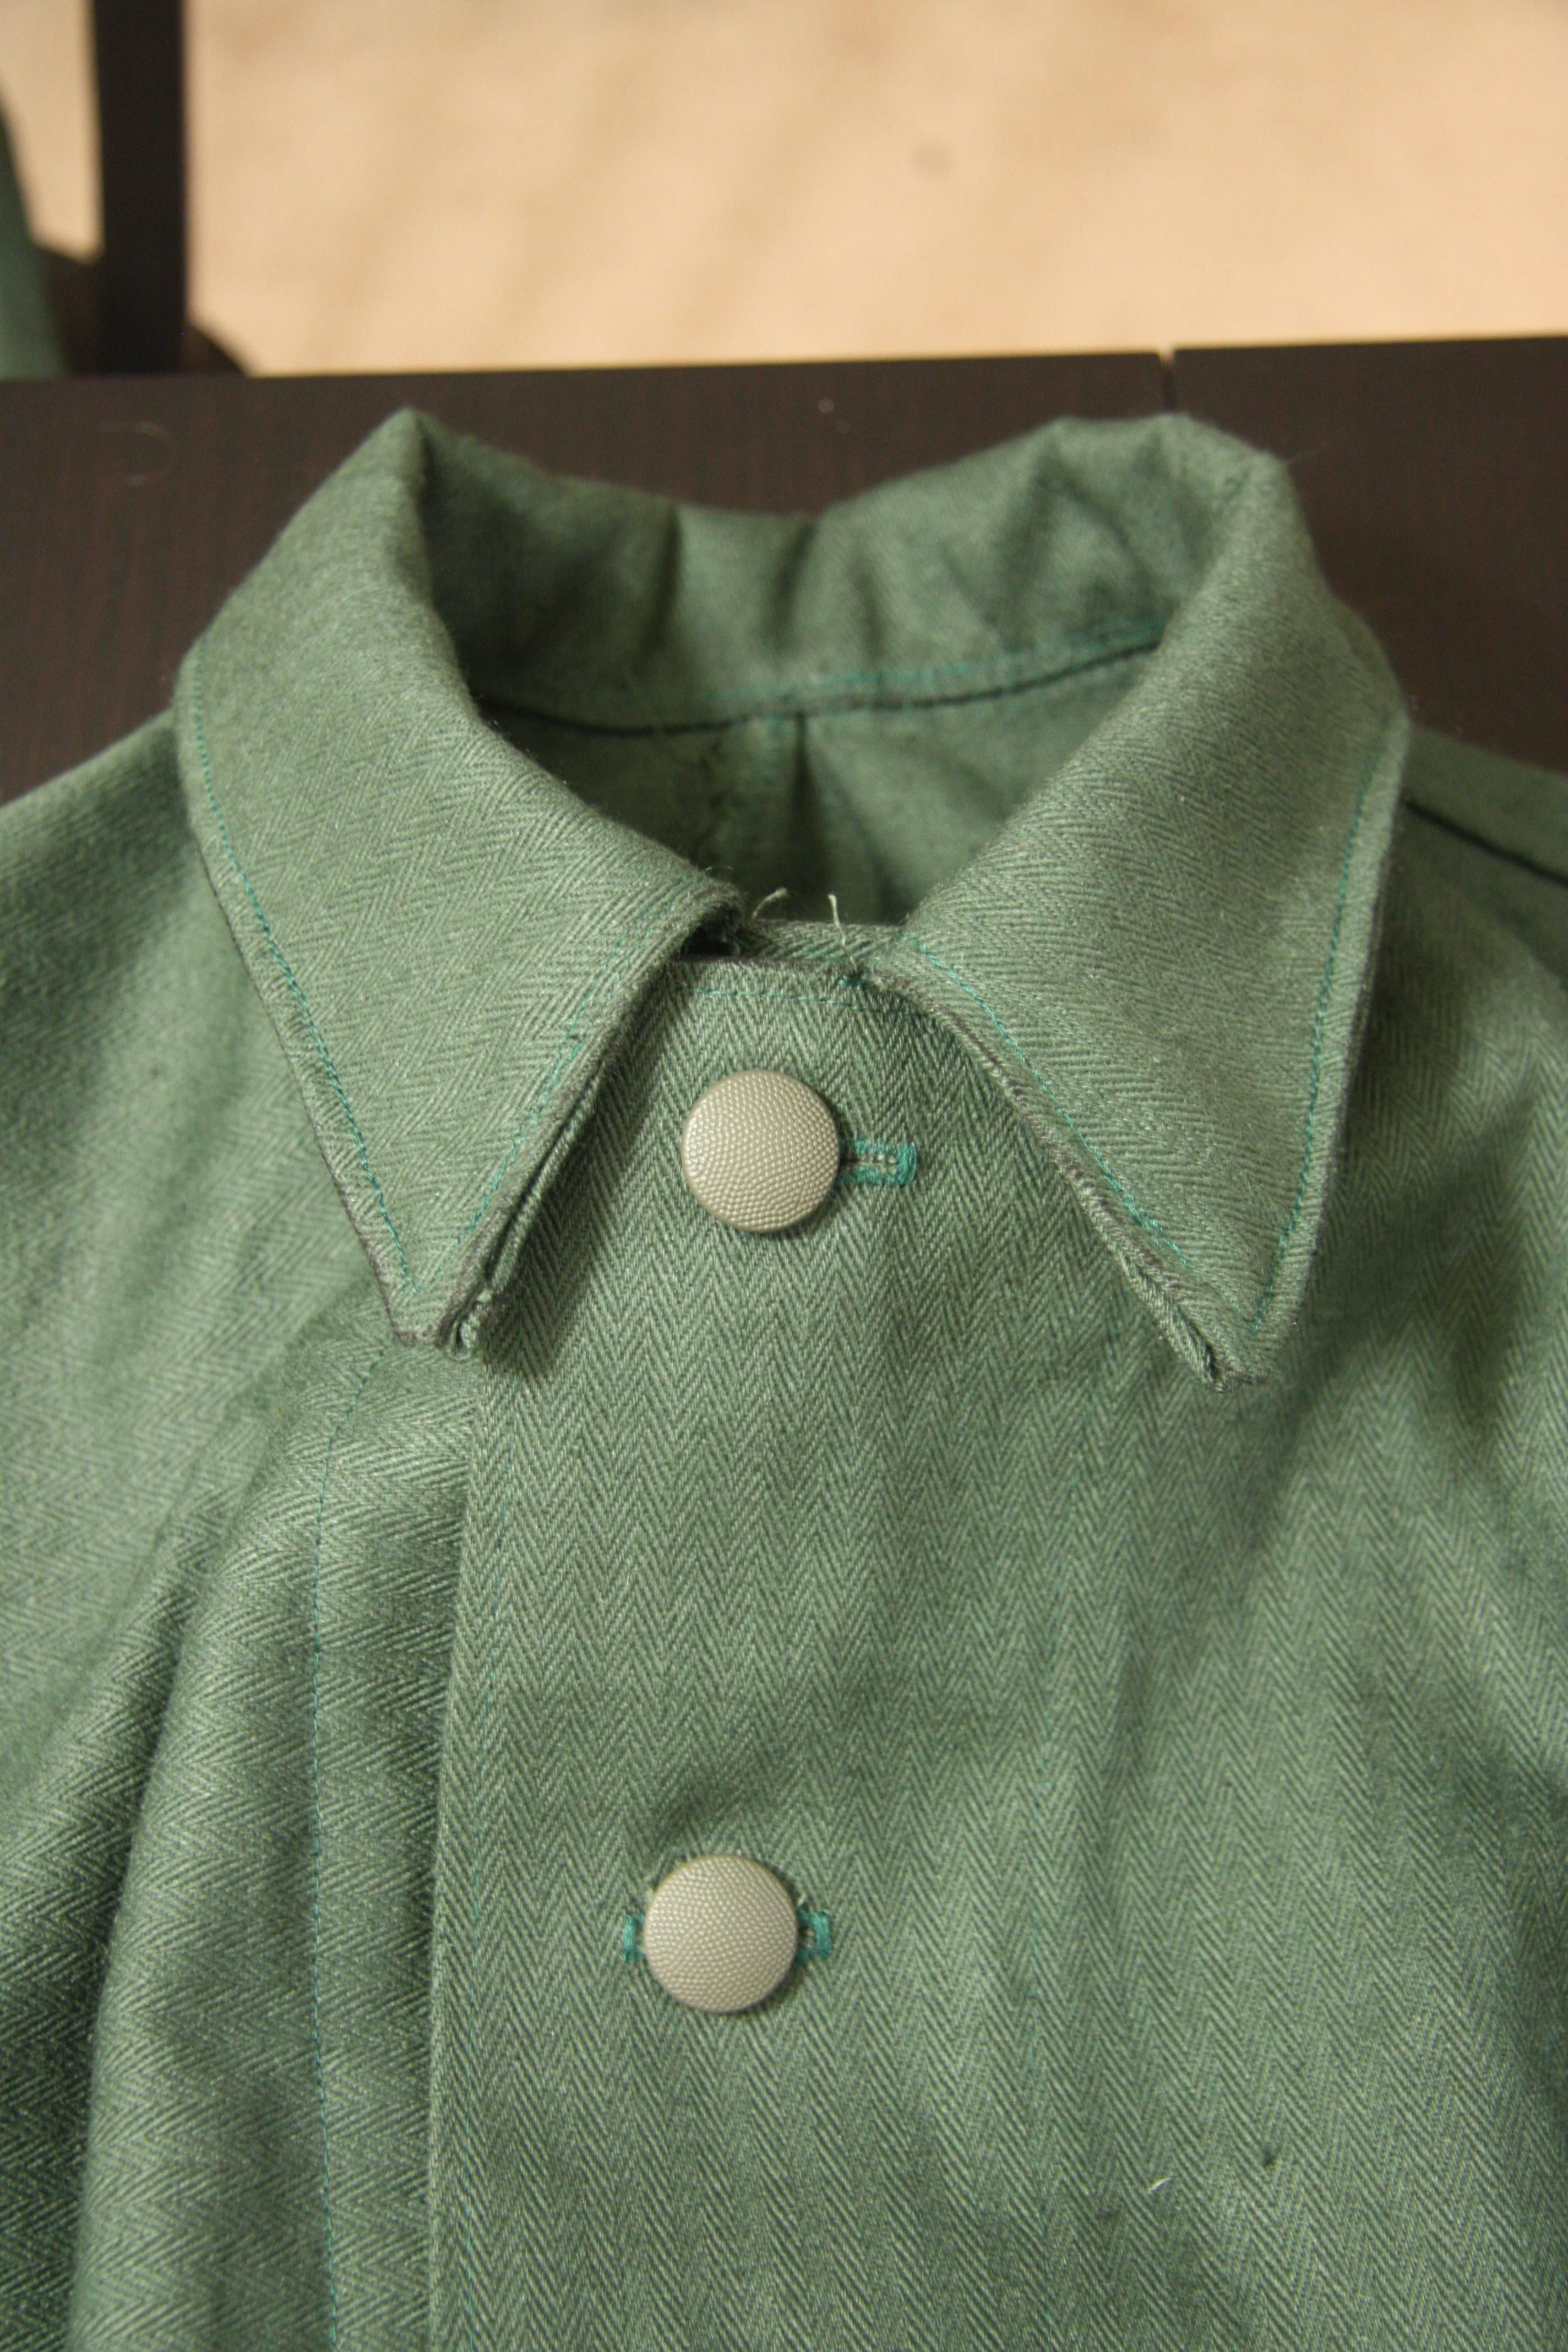 Homemade Drillich and HBT Loaner Tunic projects | WWII Airsoft Association